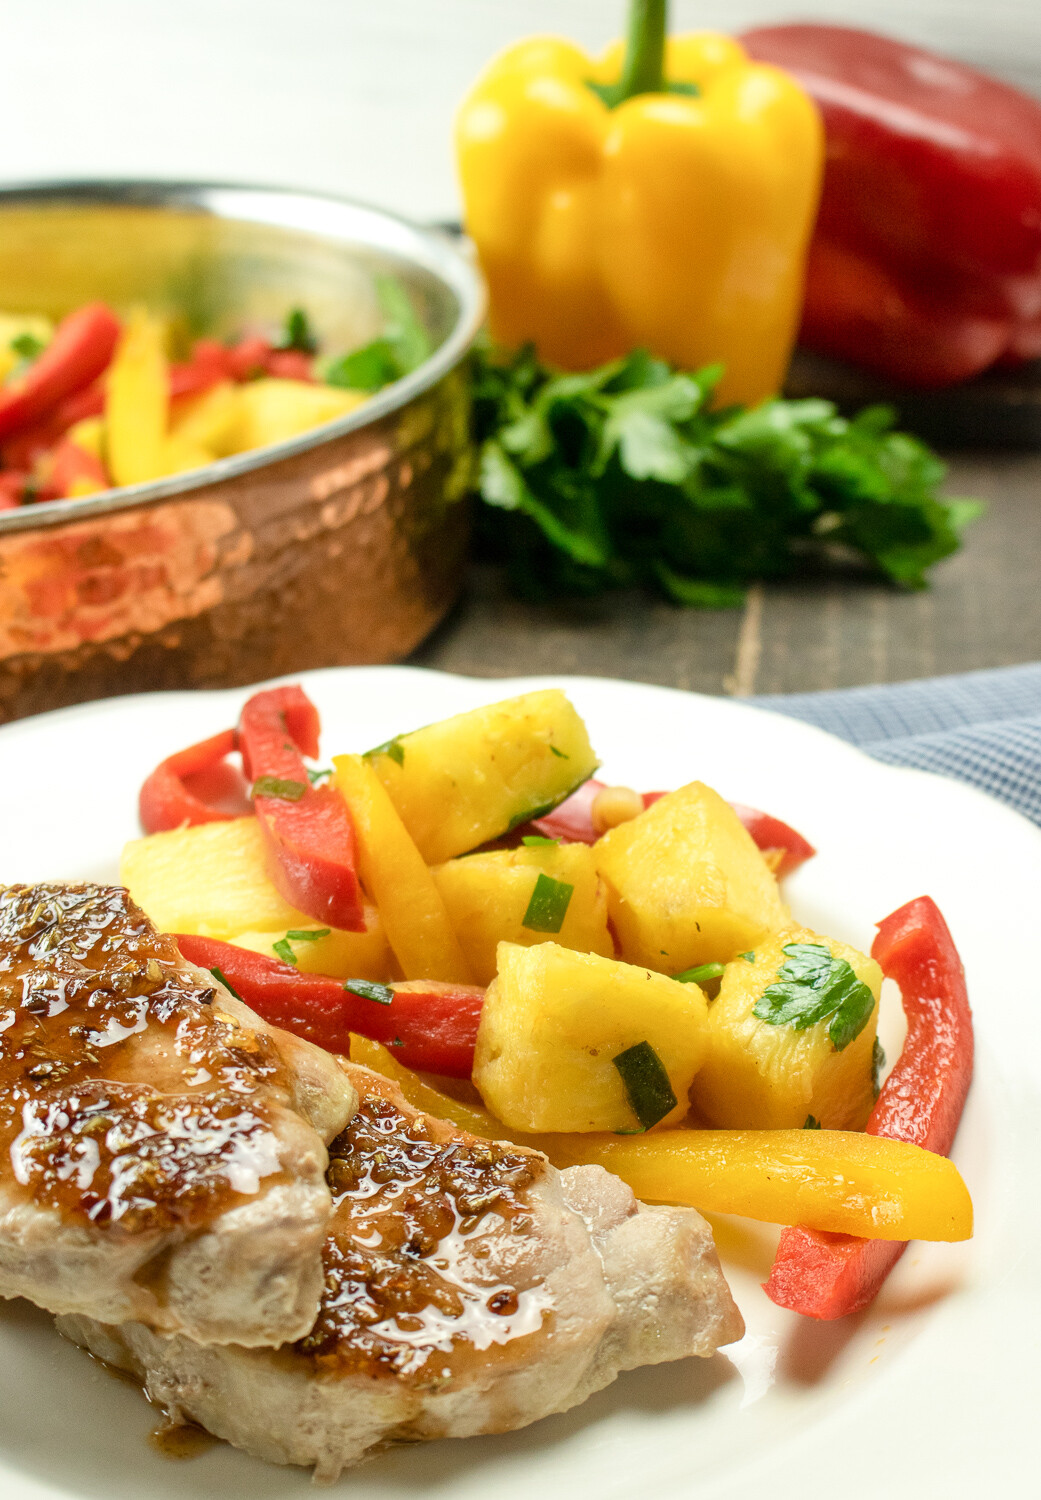 Sweet & Sour Pork Chops with Peppers & Pineapple